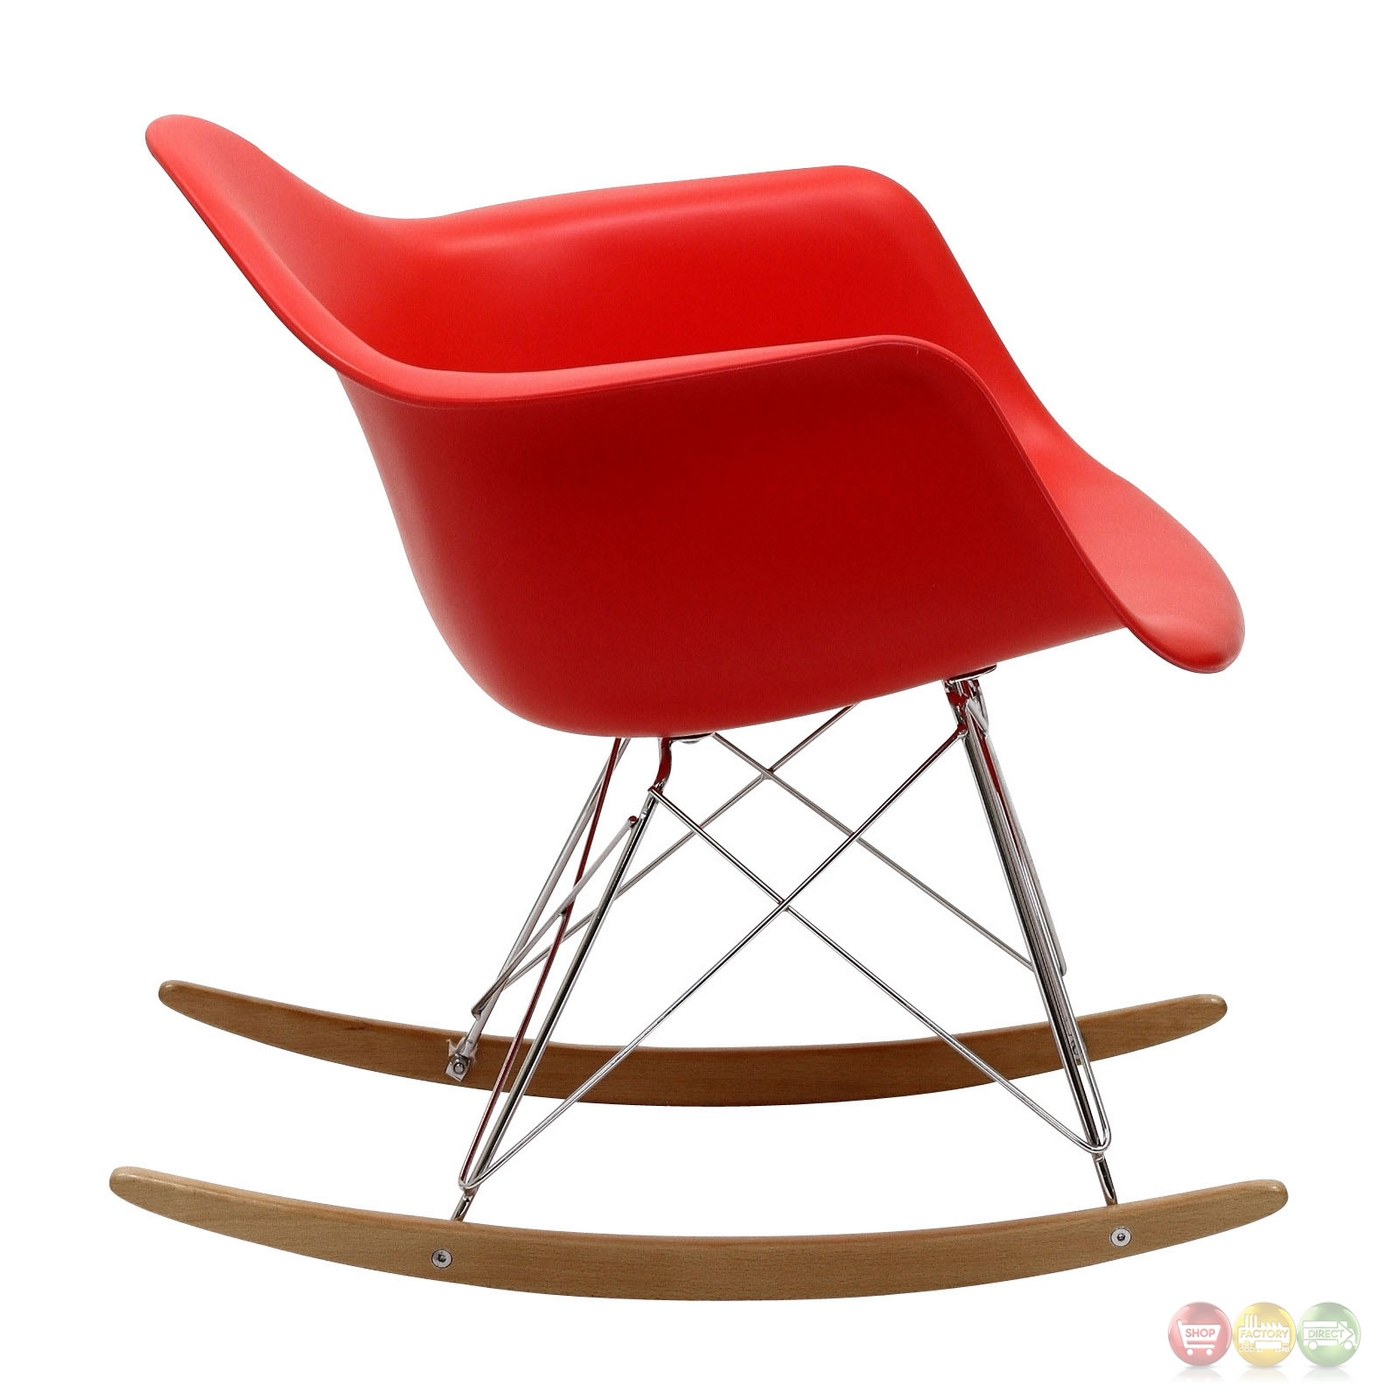 Rocker Molded Plastic Rocking Lounge Chair With Chrome & Wood Base Red